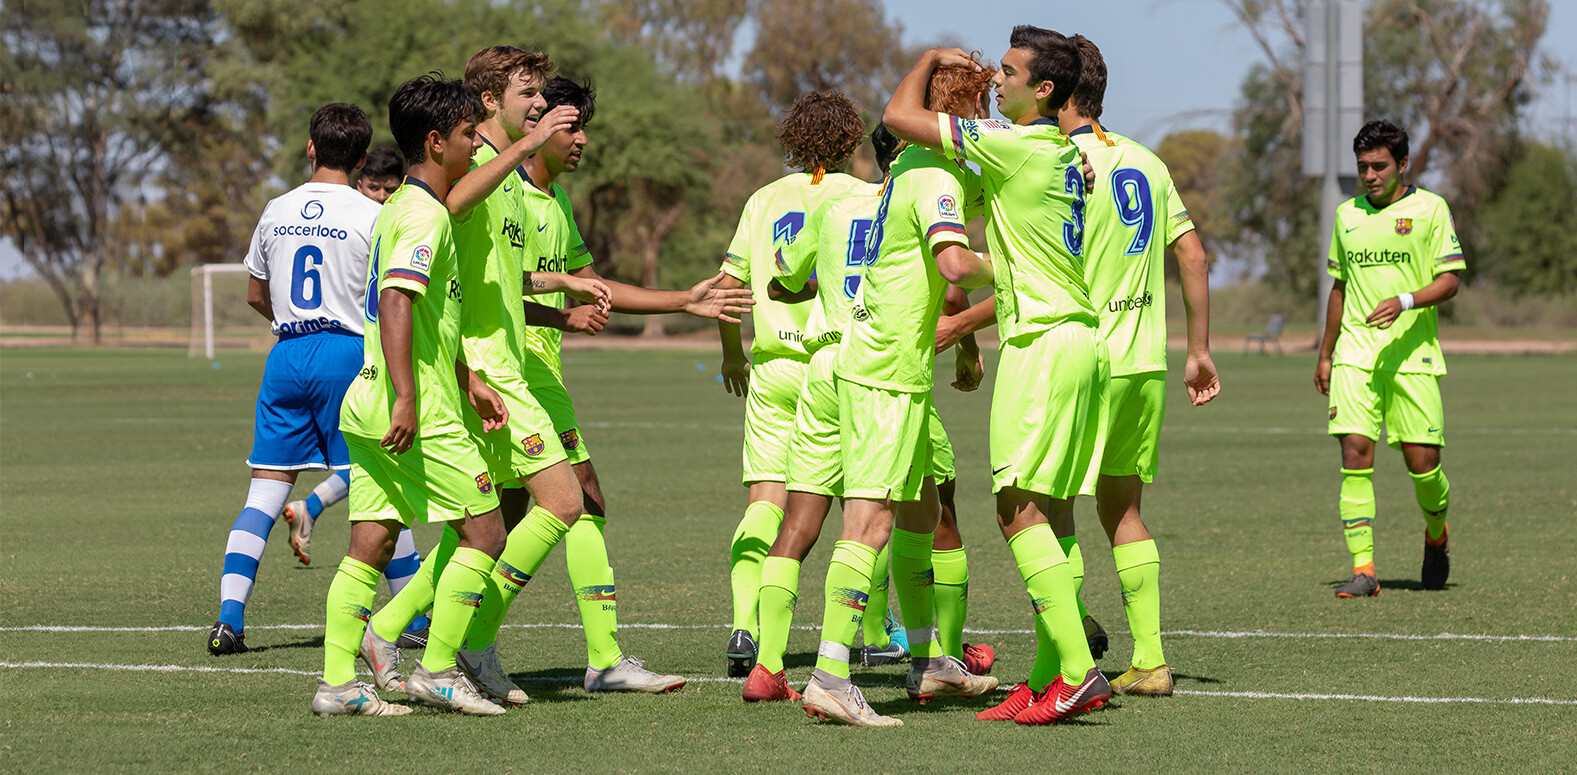 Barça Residency Academy U-19s celebrating a goal vs. Albion SC